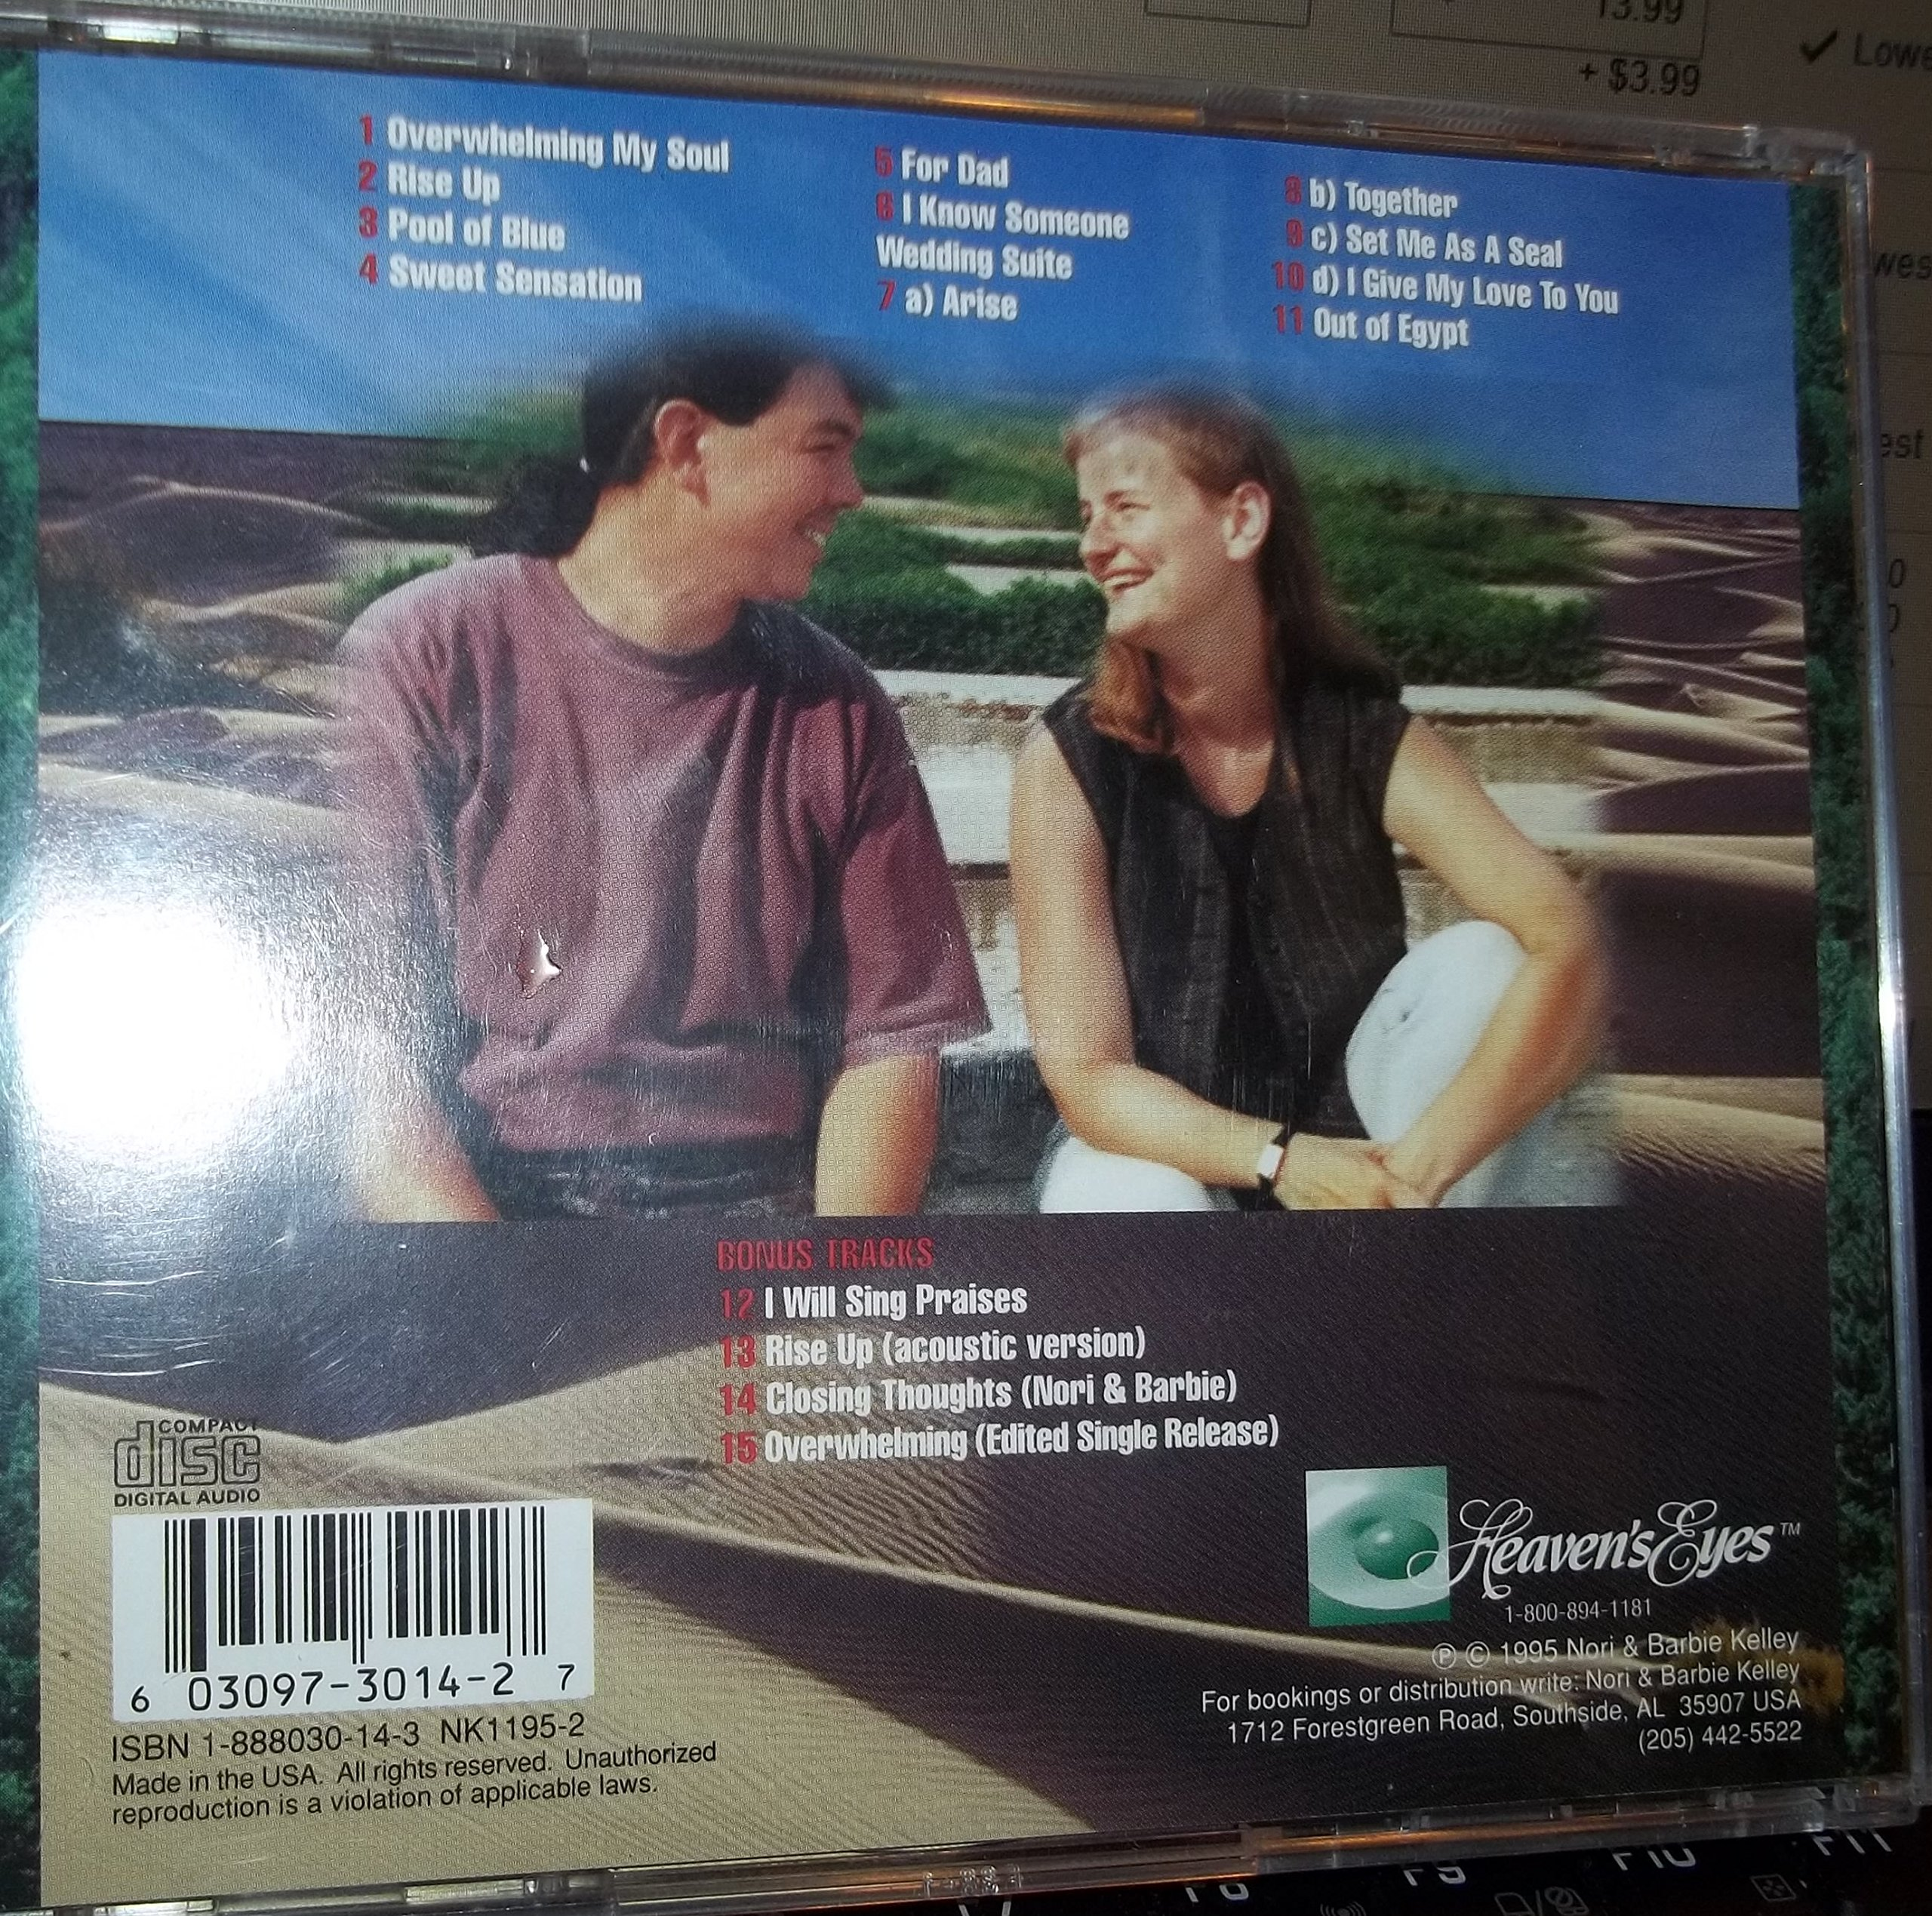 good service classic fit differently Out of Egypt - by Nori & Barbie Kelley (Audio CD): Nori and ...